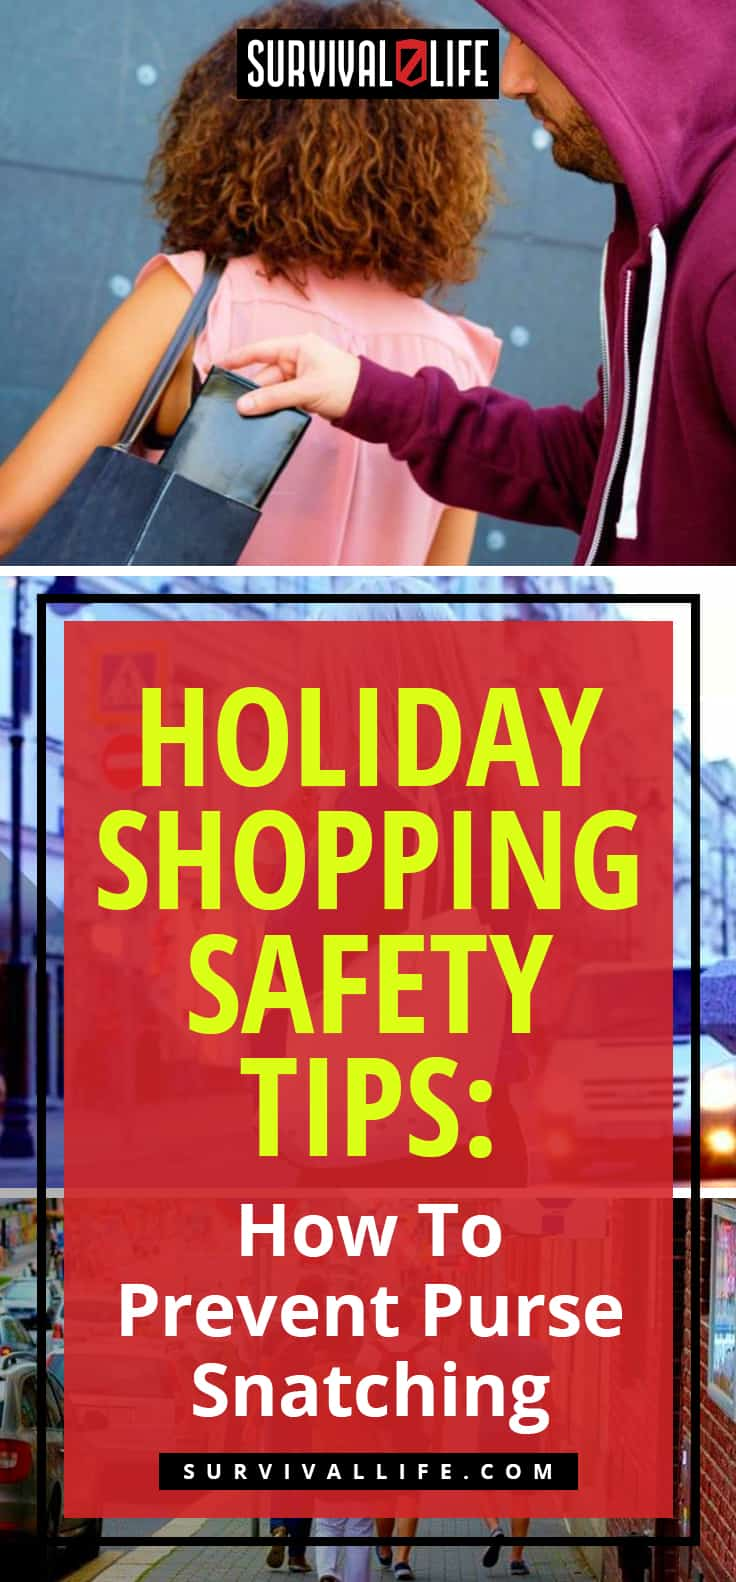 Holiday Shopping Safety Tips: How To Prevent Purse Snatching | holiday safety topics